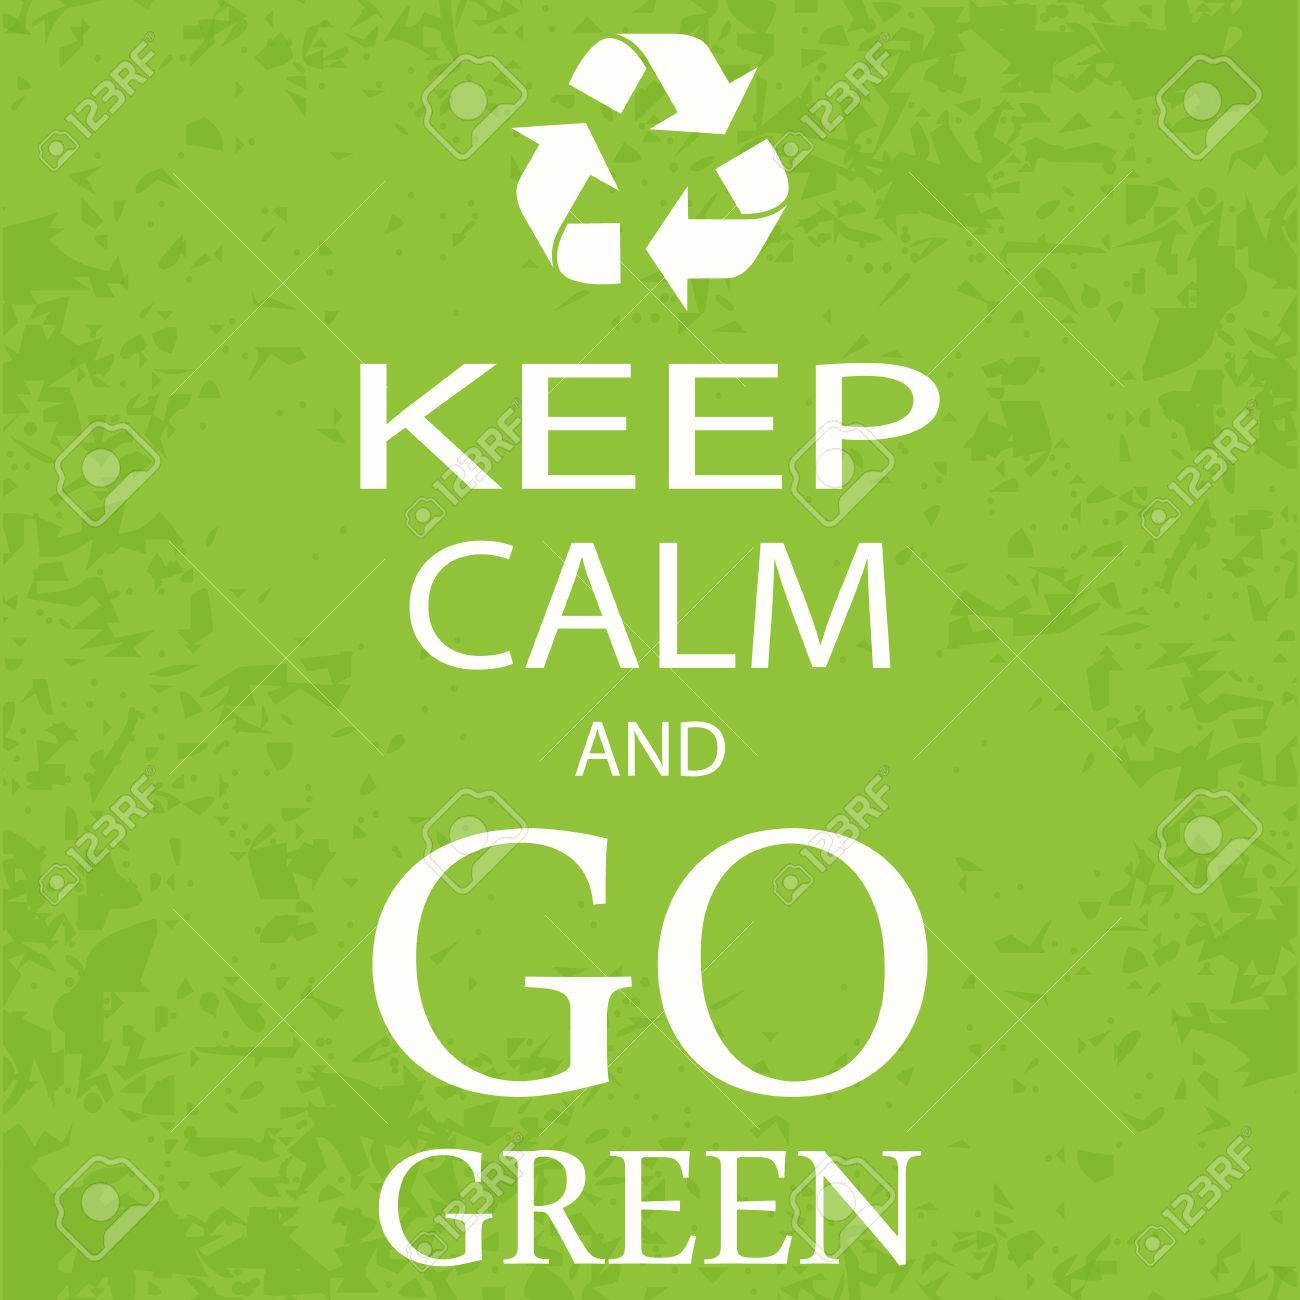 Banner Keep Calm And Go Green Royalty Free Cliparts Vectors And Stock Illustration Image 45622539